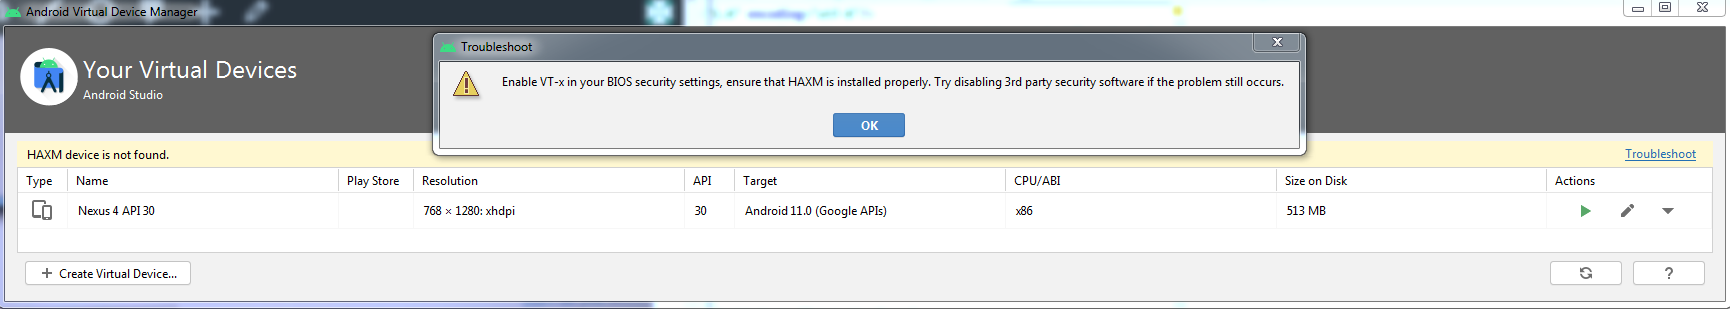 Enable VT-x in your BIOS security settings, ensure that HAXM is installed properly